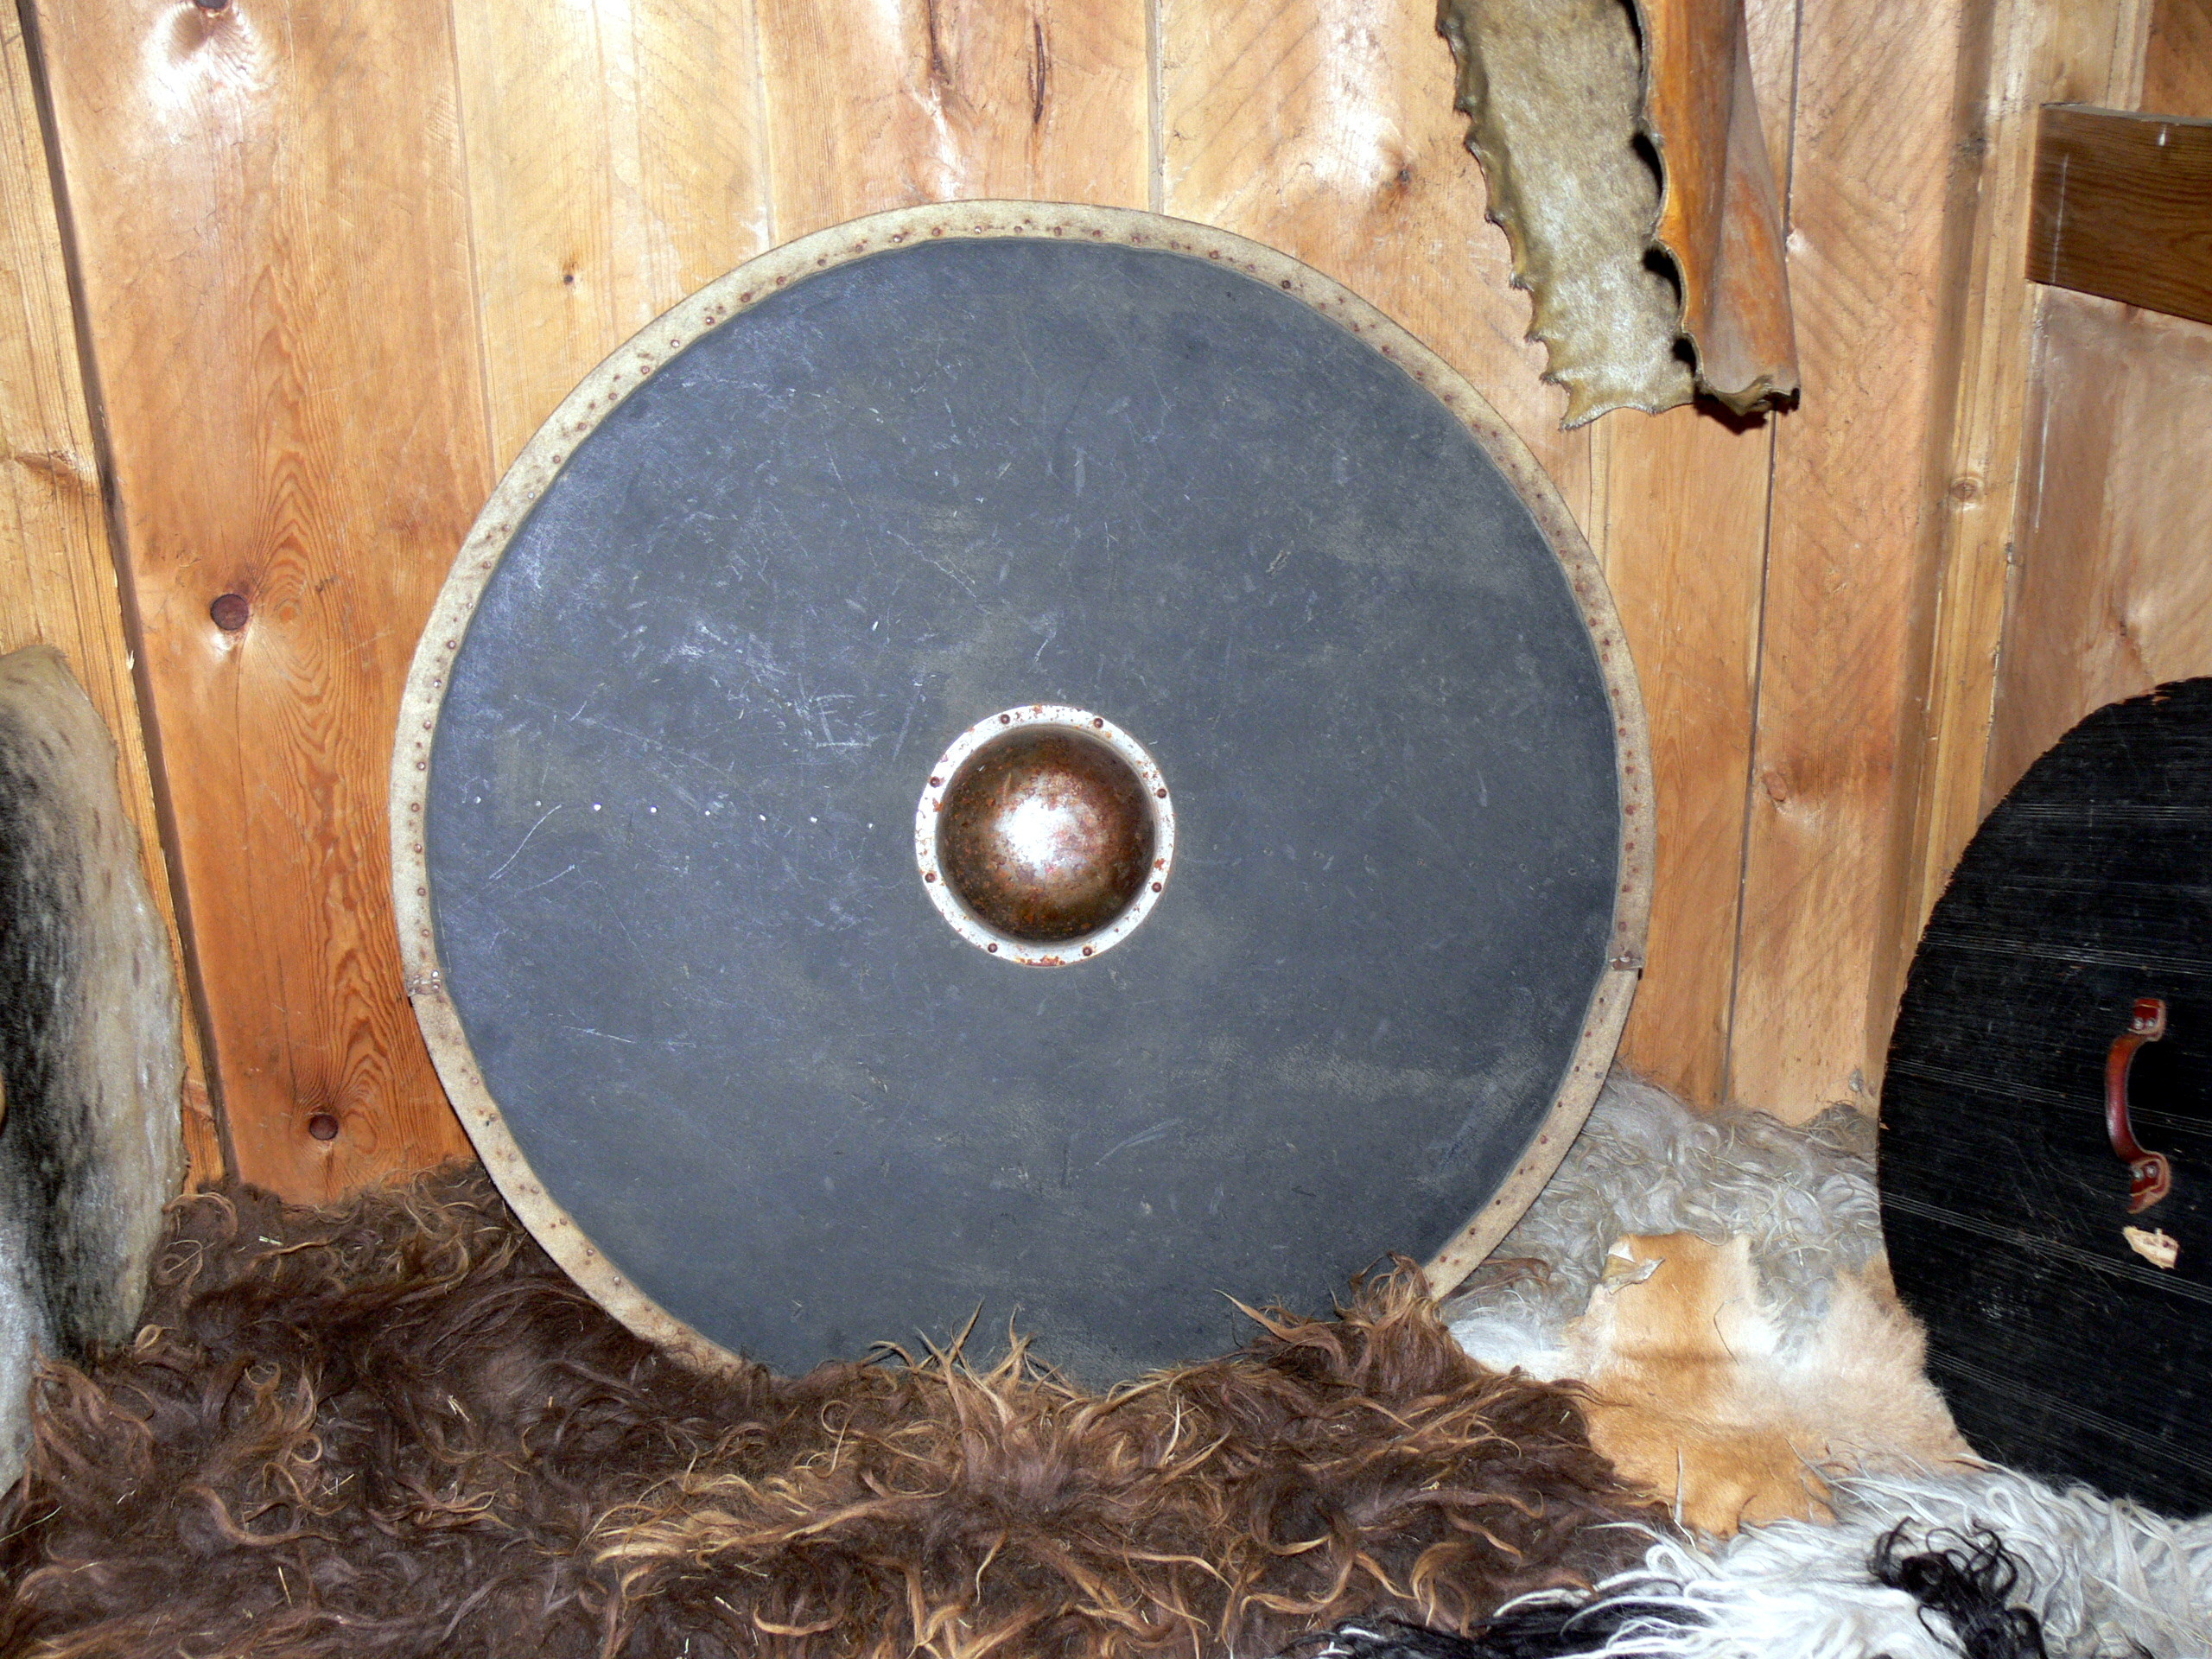 Image shows a round Viking shield leaning against a wall. The shield is dull black with a bronze boss in the centre. It's propped against a wooden wall, with a fur rug underneath it.